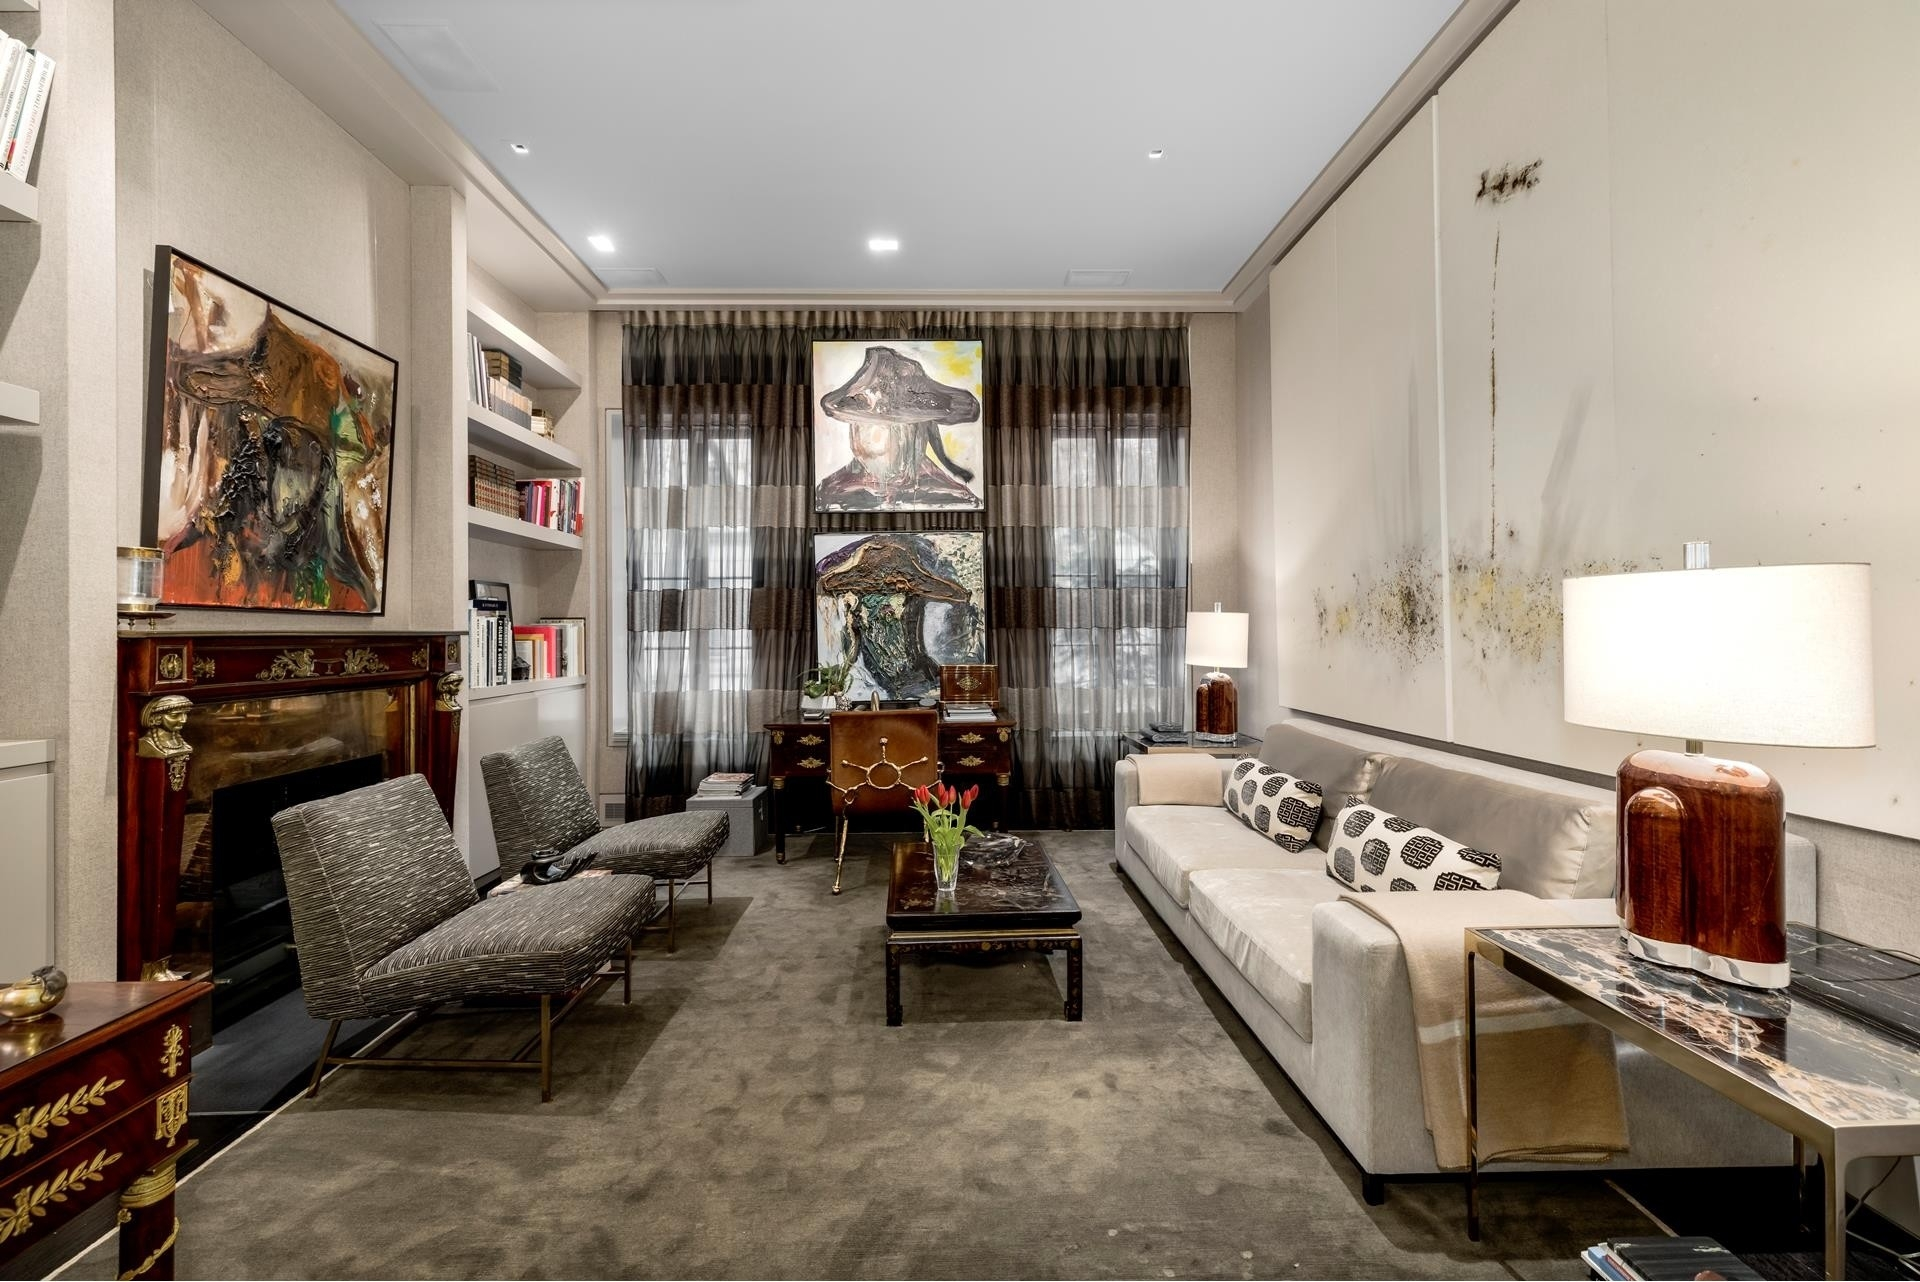 Single Family Townhouse for Sale at Lenox Hill, New York, NY 10065